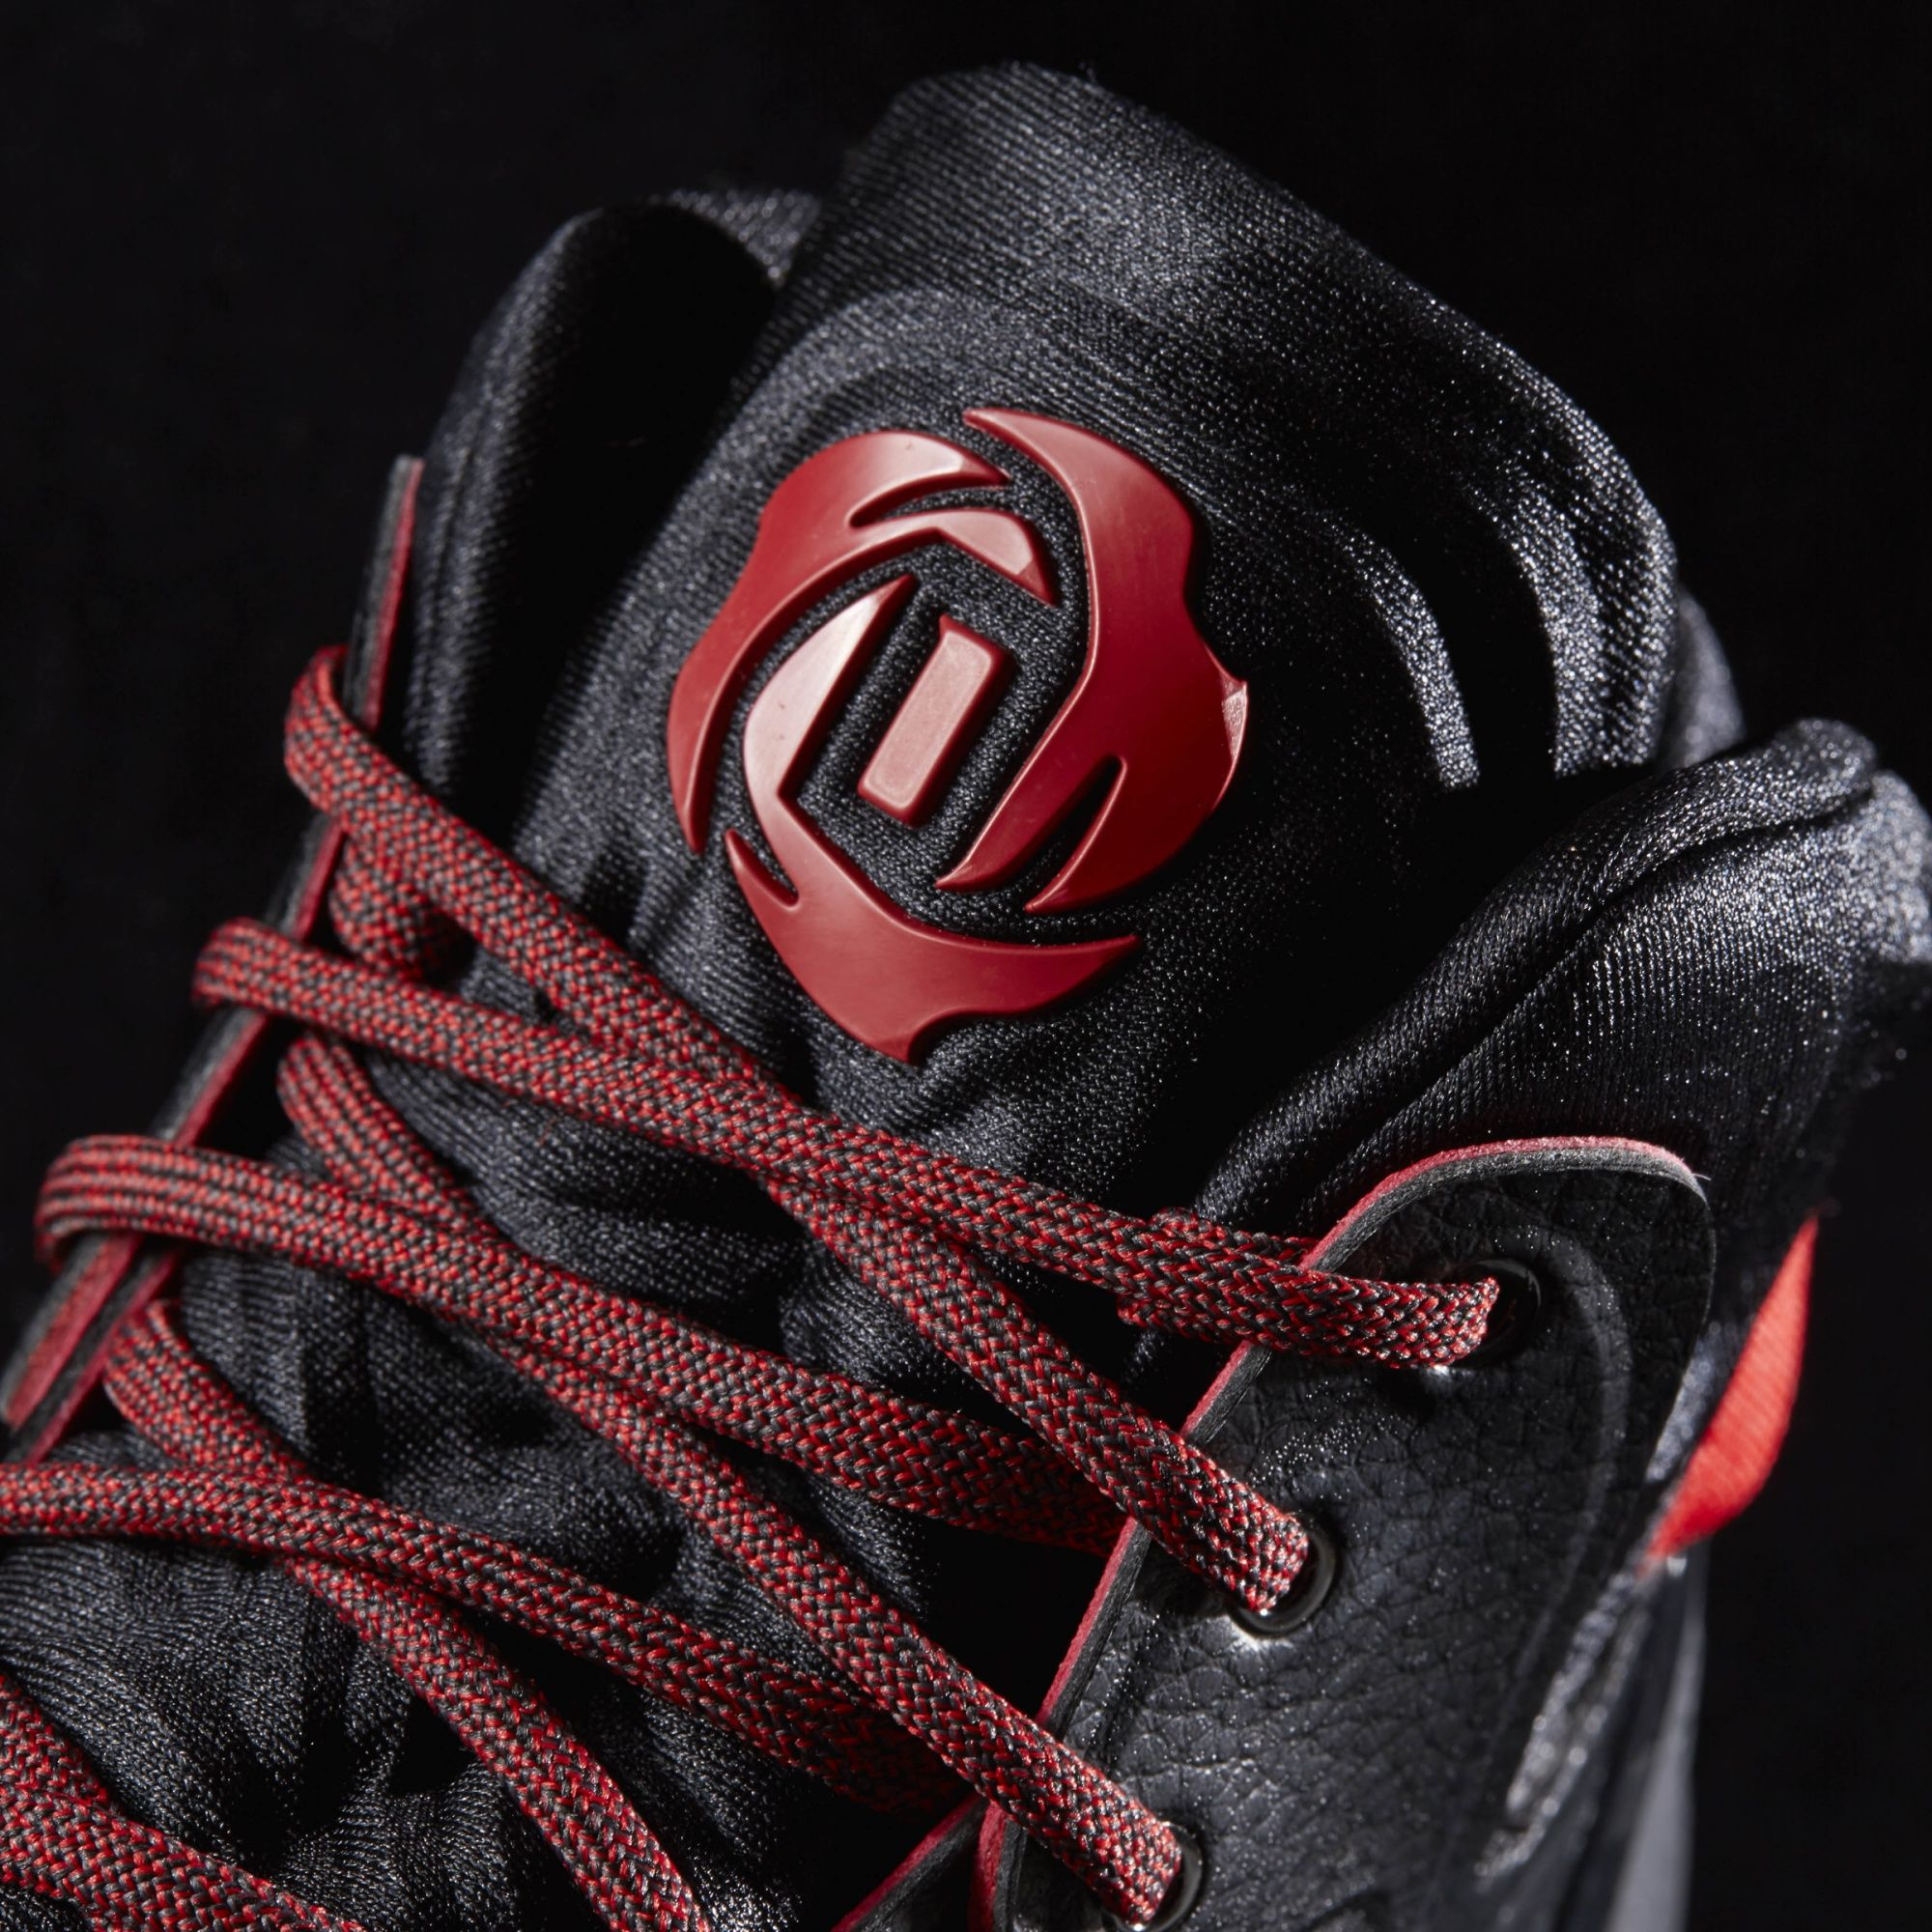 the-adidas-rose-7-in-blackscarlet-is-available-now-3